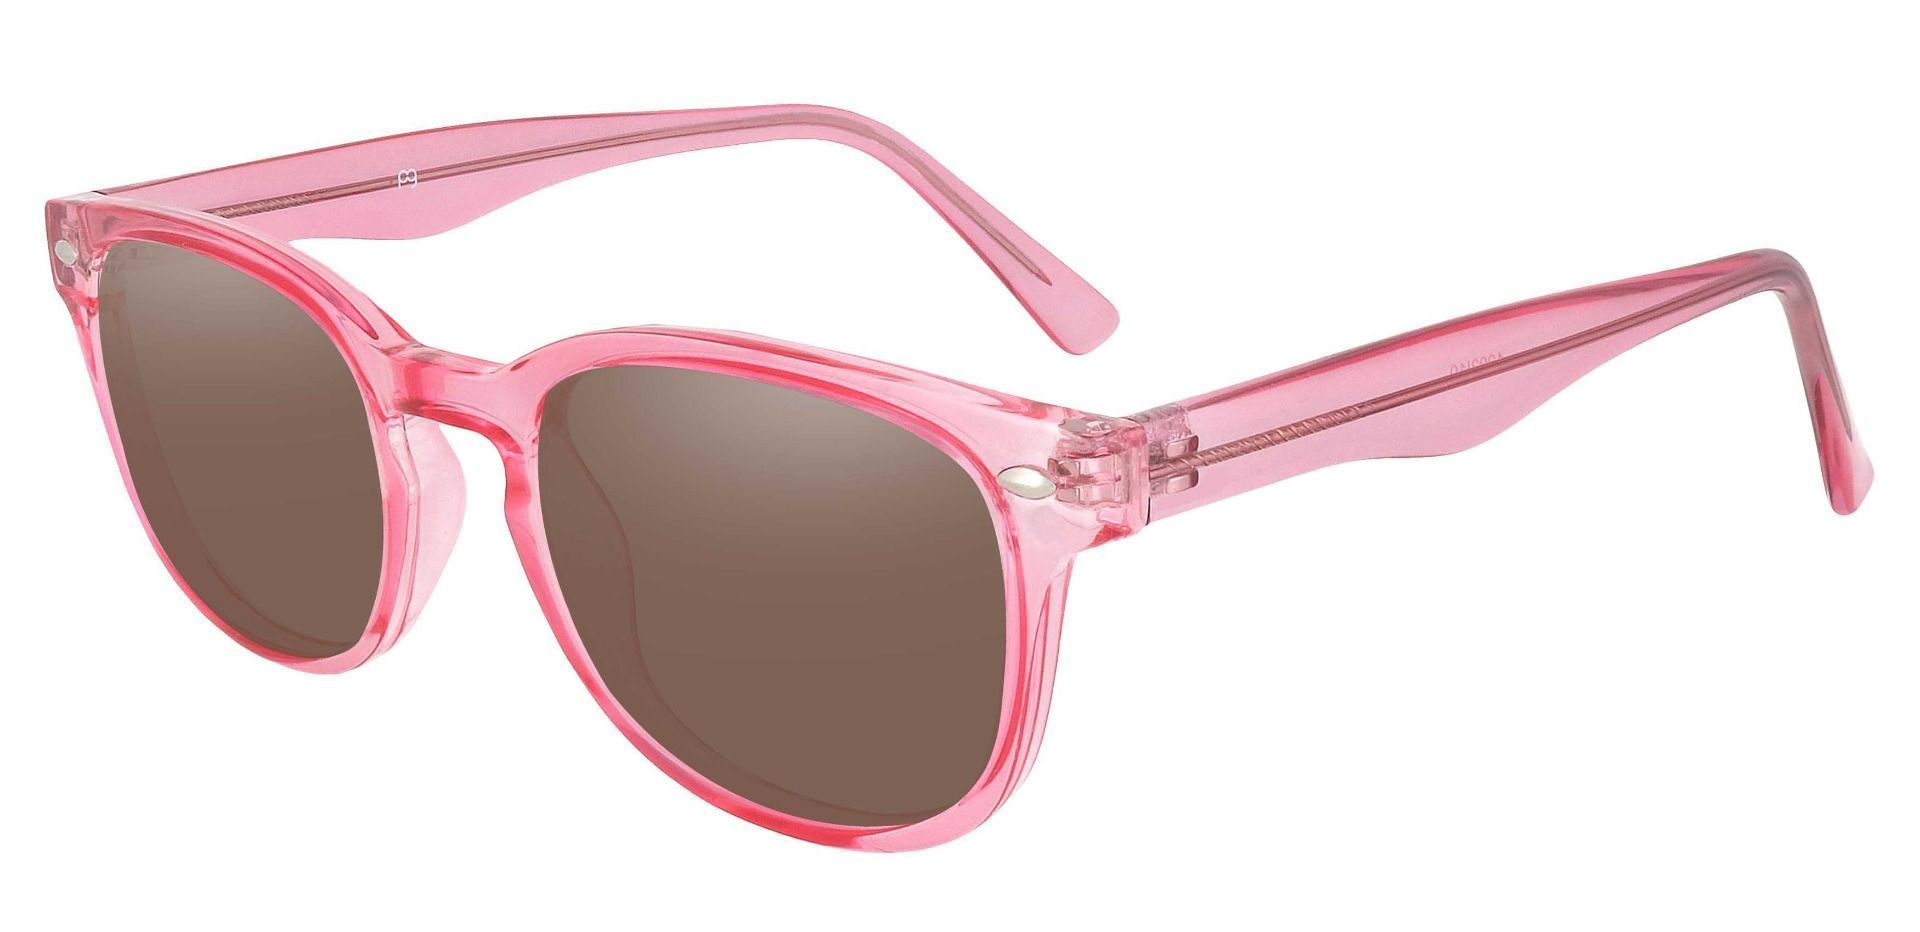 Swirl Classic Square Prescription Sunglasses - Pink Frame With Brown Lenses